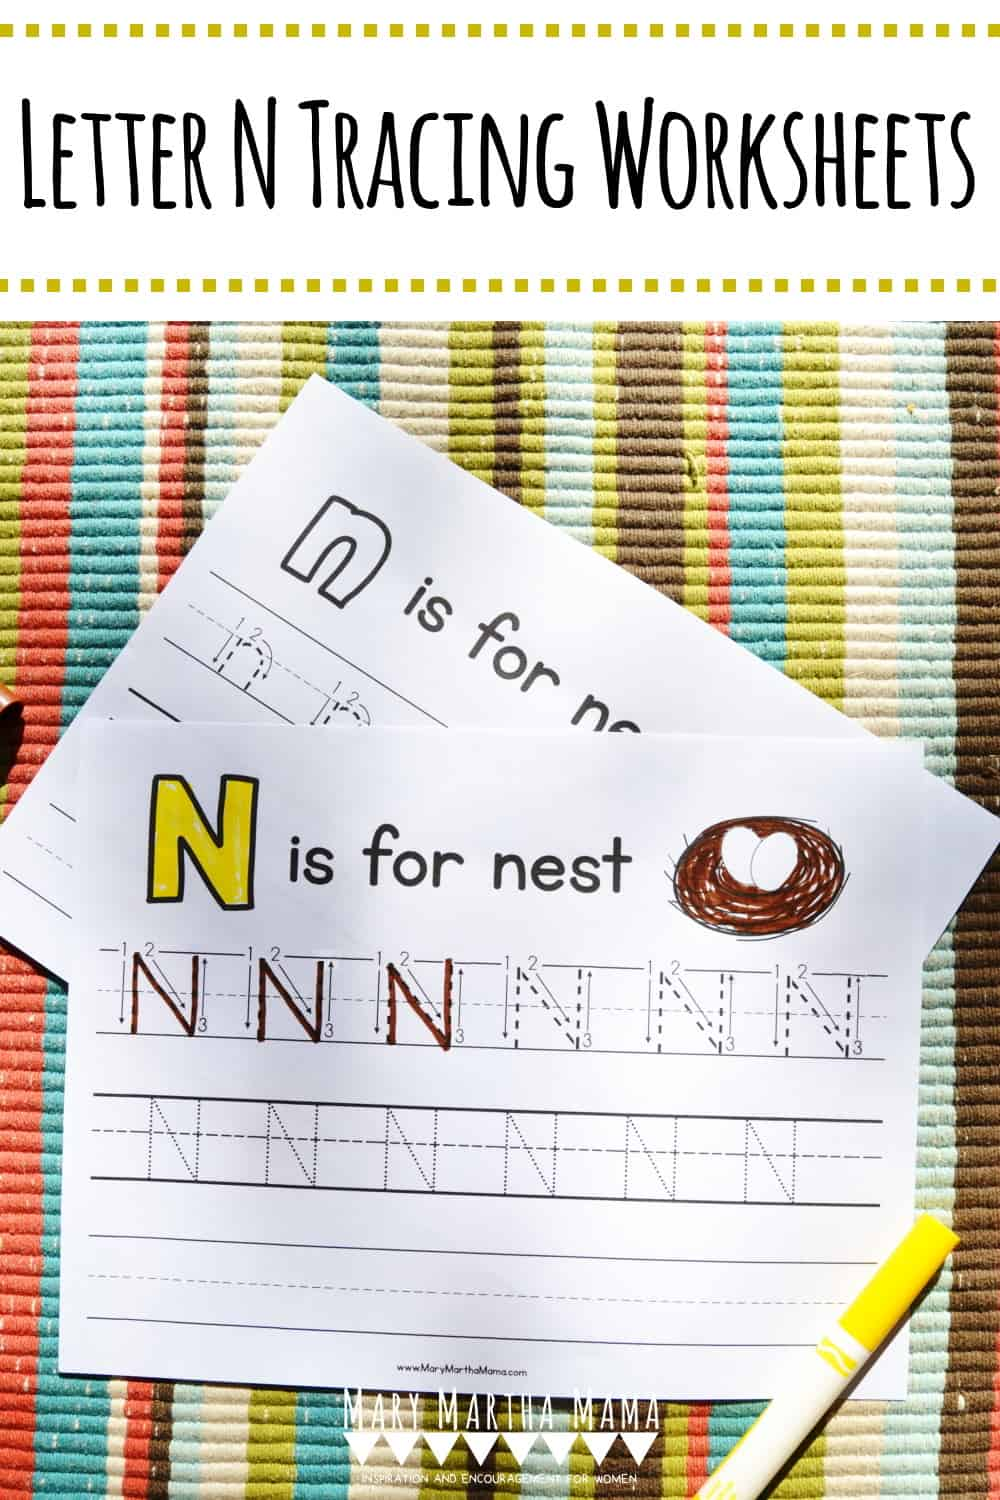 Use these free printable Letter N Tracing Worksheets to help your kiddo learn proper letter formation for upper and lower case N.